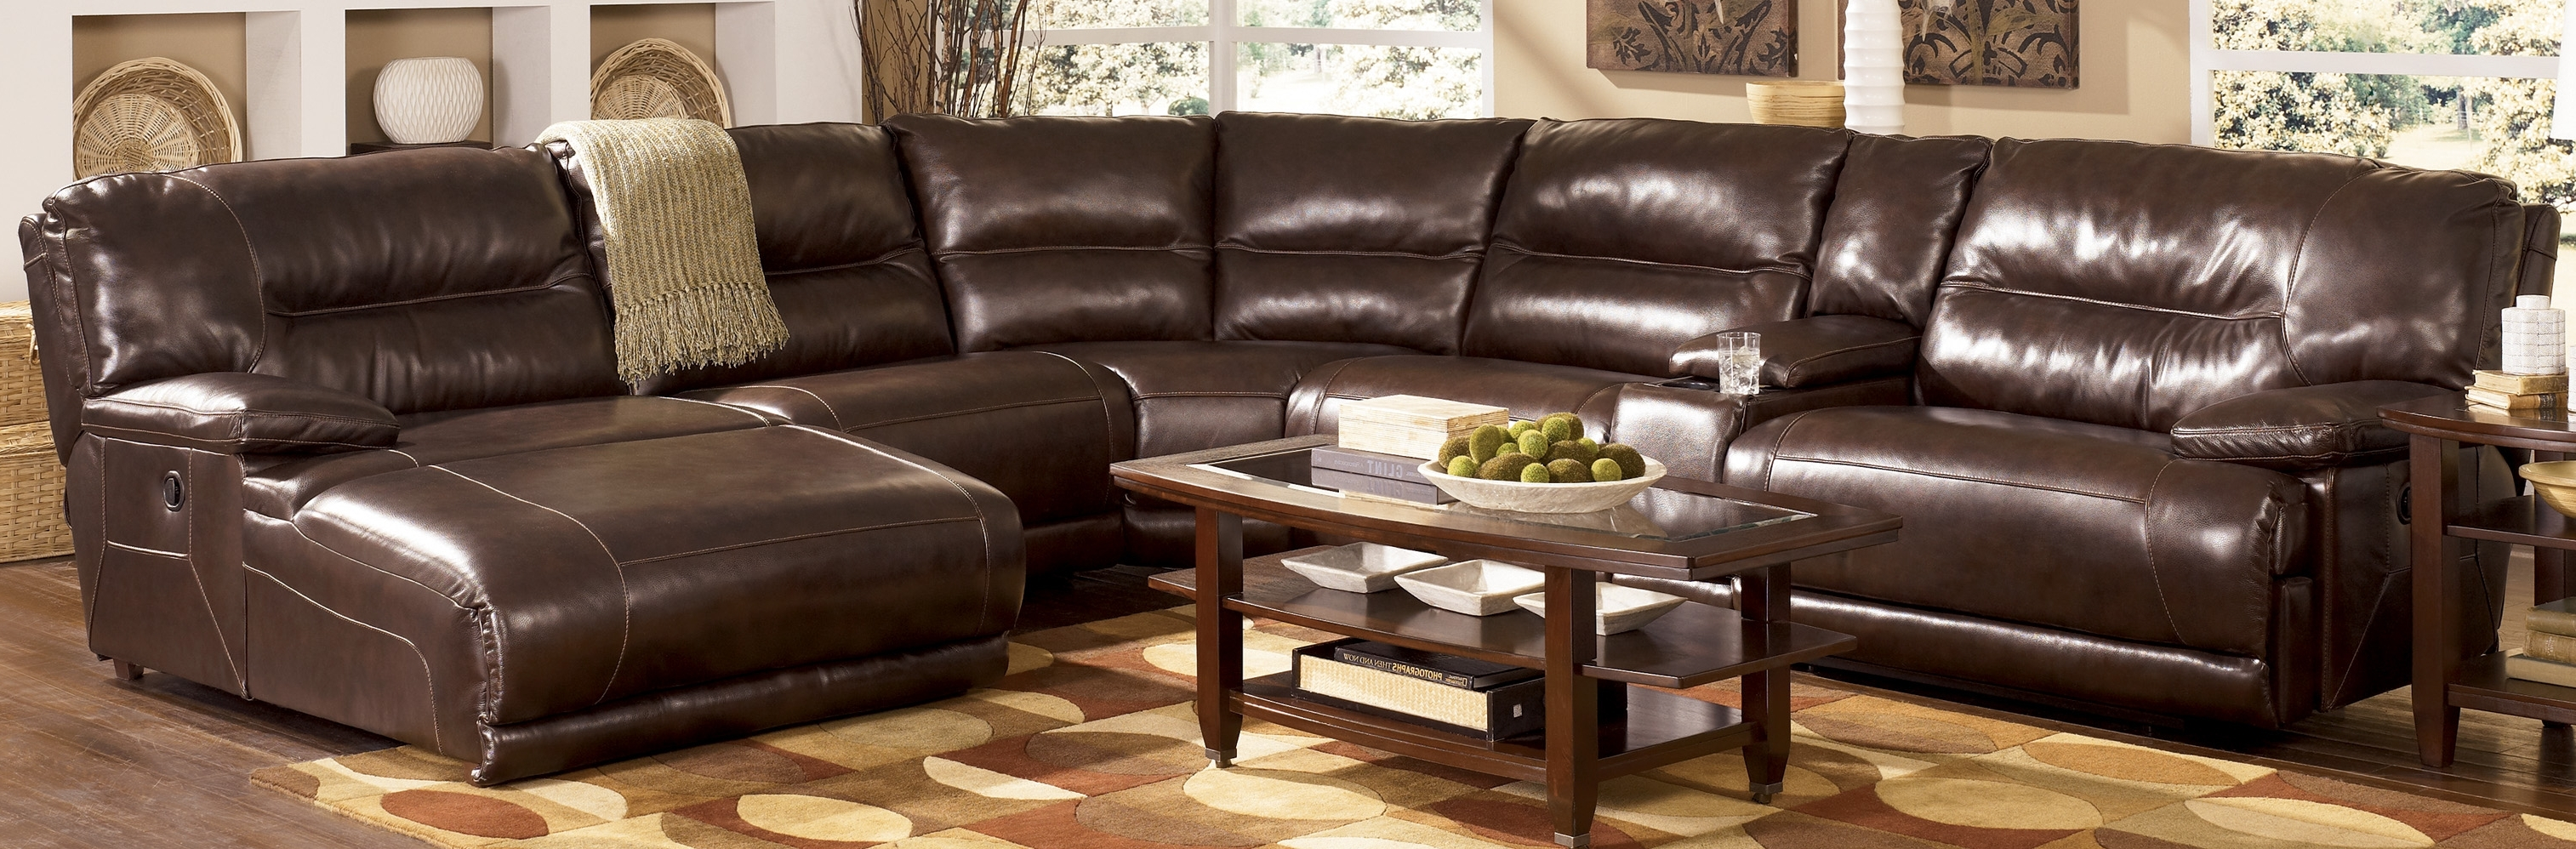 Faux Leather Sectional Sofa With Chaise Inside Trendy Genuine Leather Sectionals With Chaise (View 5 of 15)